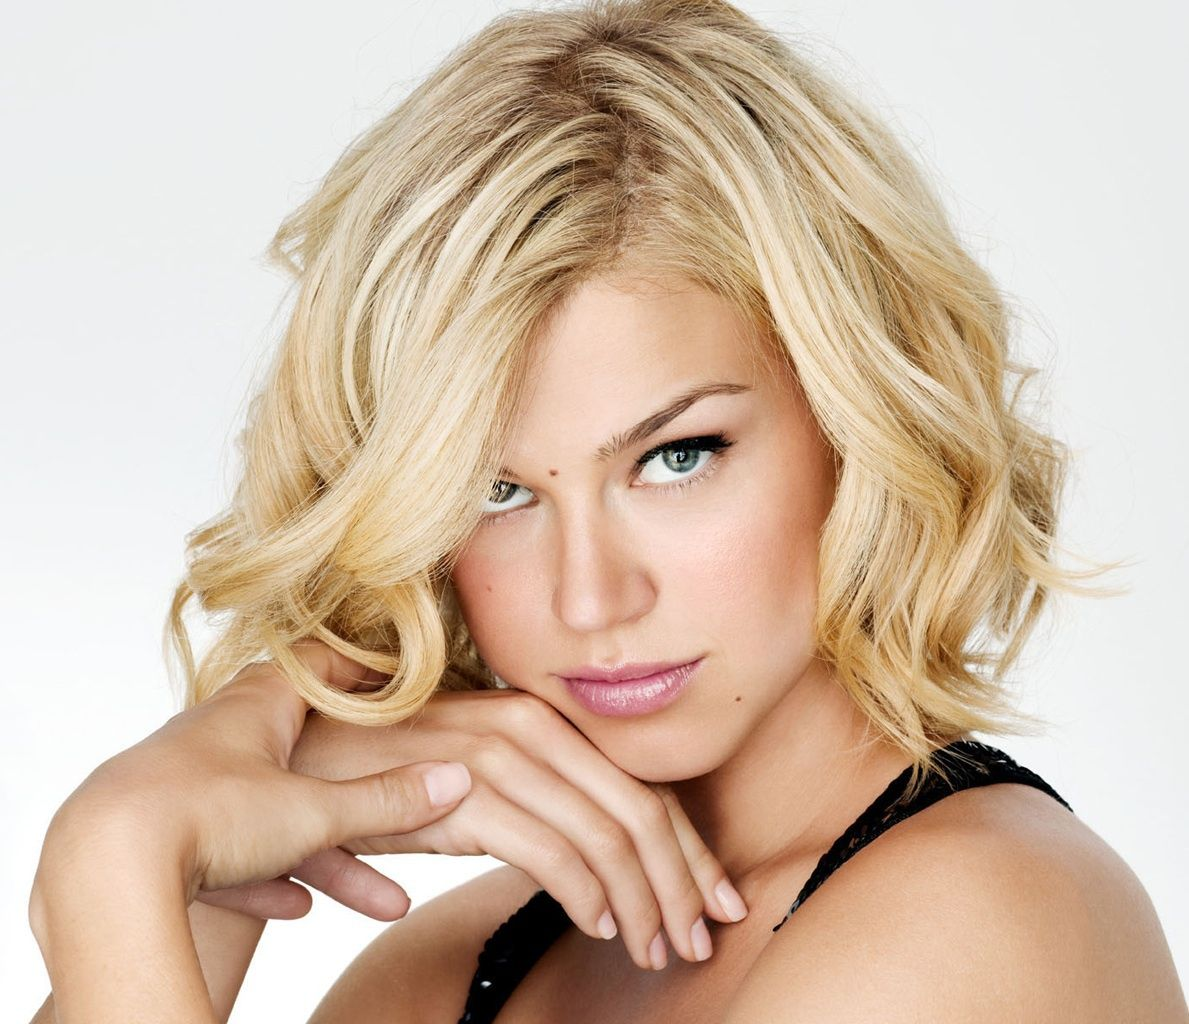 Long Curly Bob Hairstyles Best Hairstyles For Long Face Shapes 30 Flattering Cuts Bobs